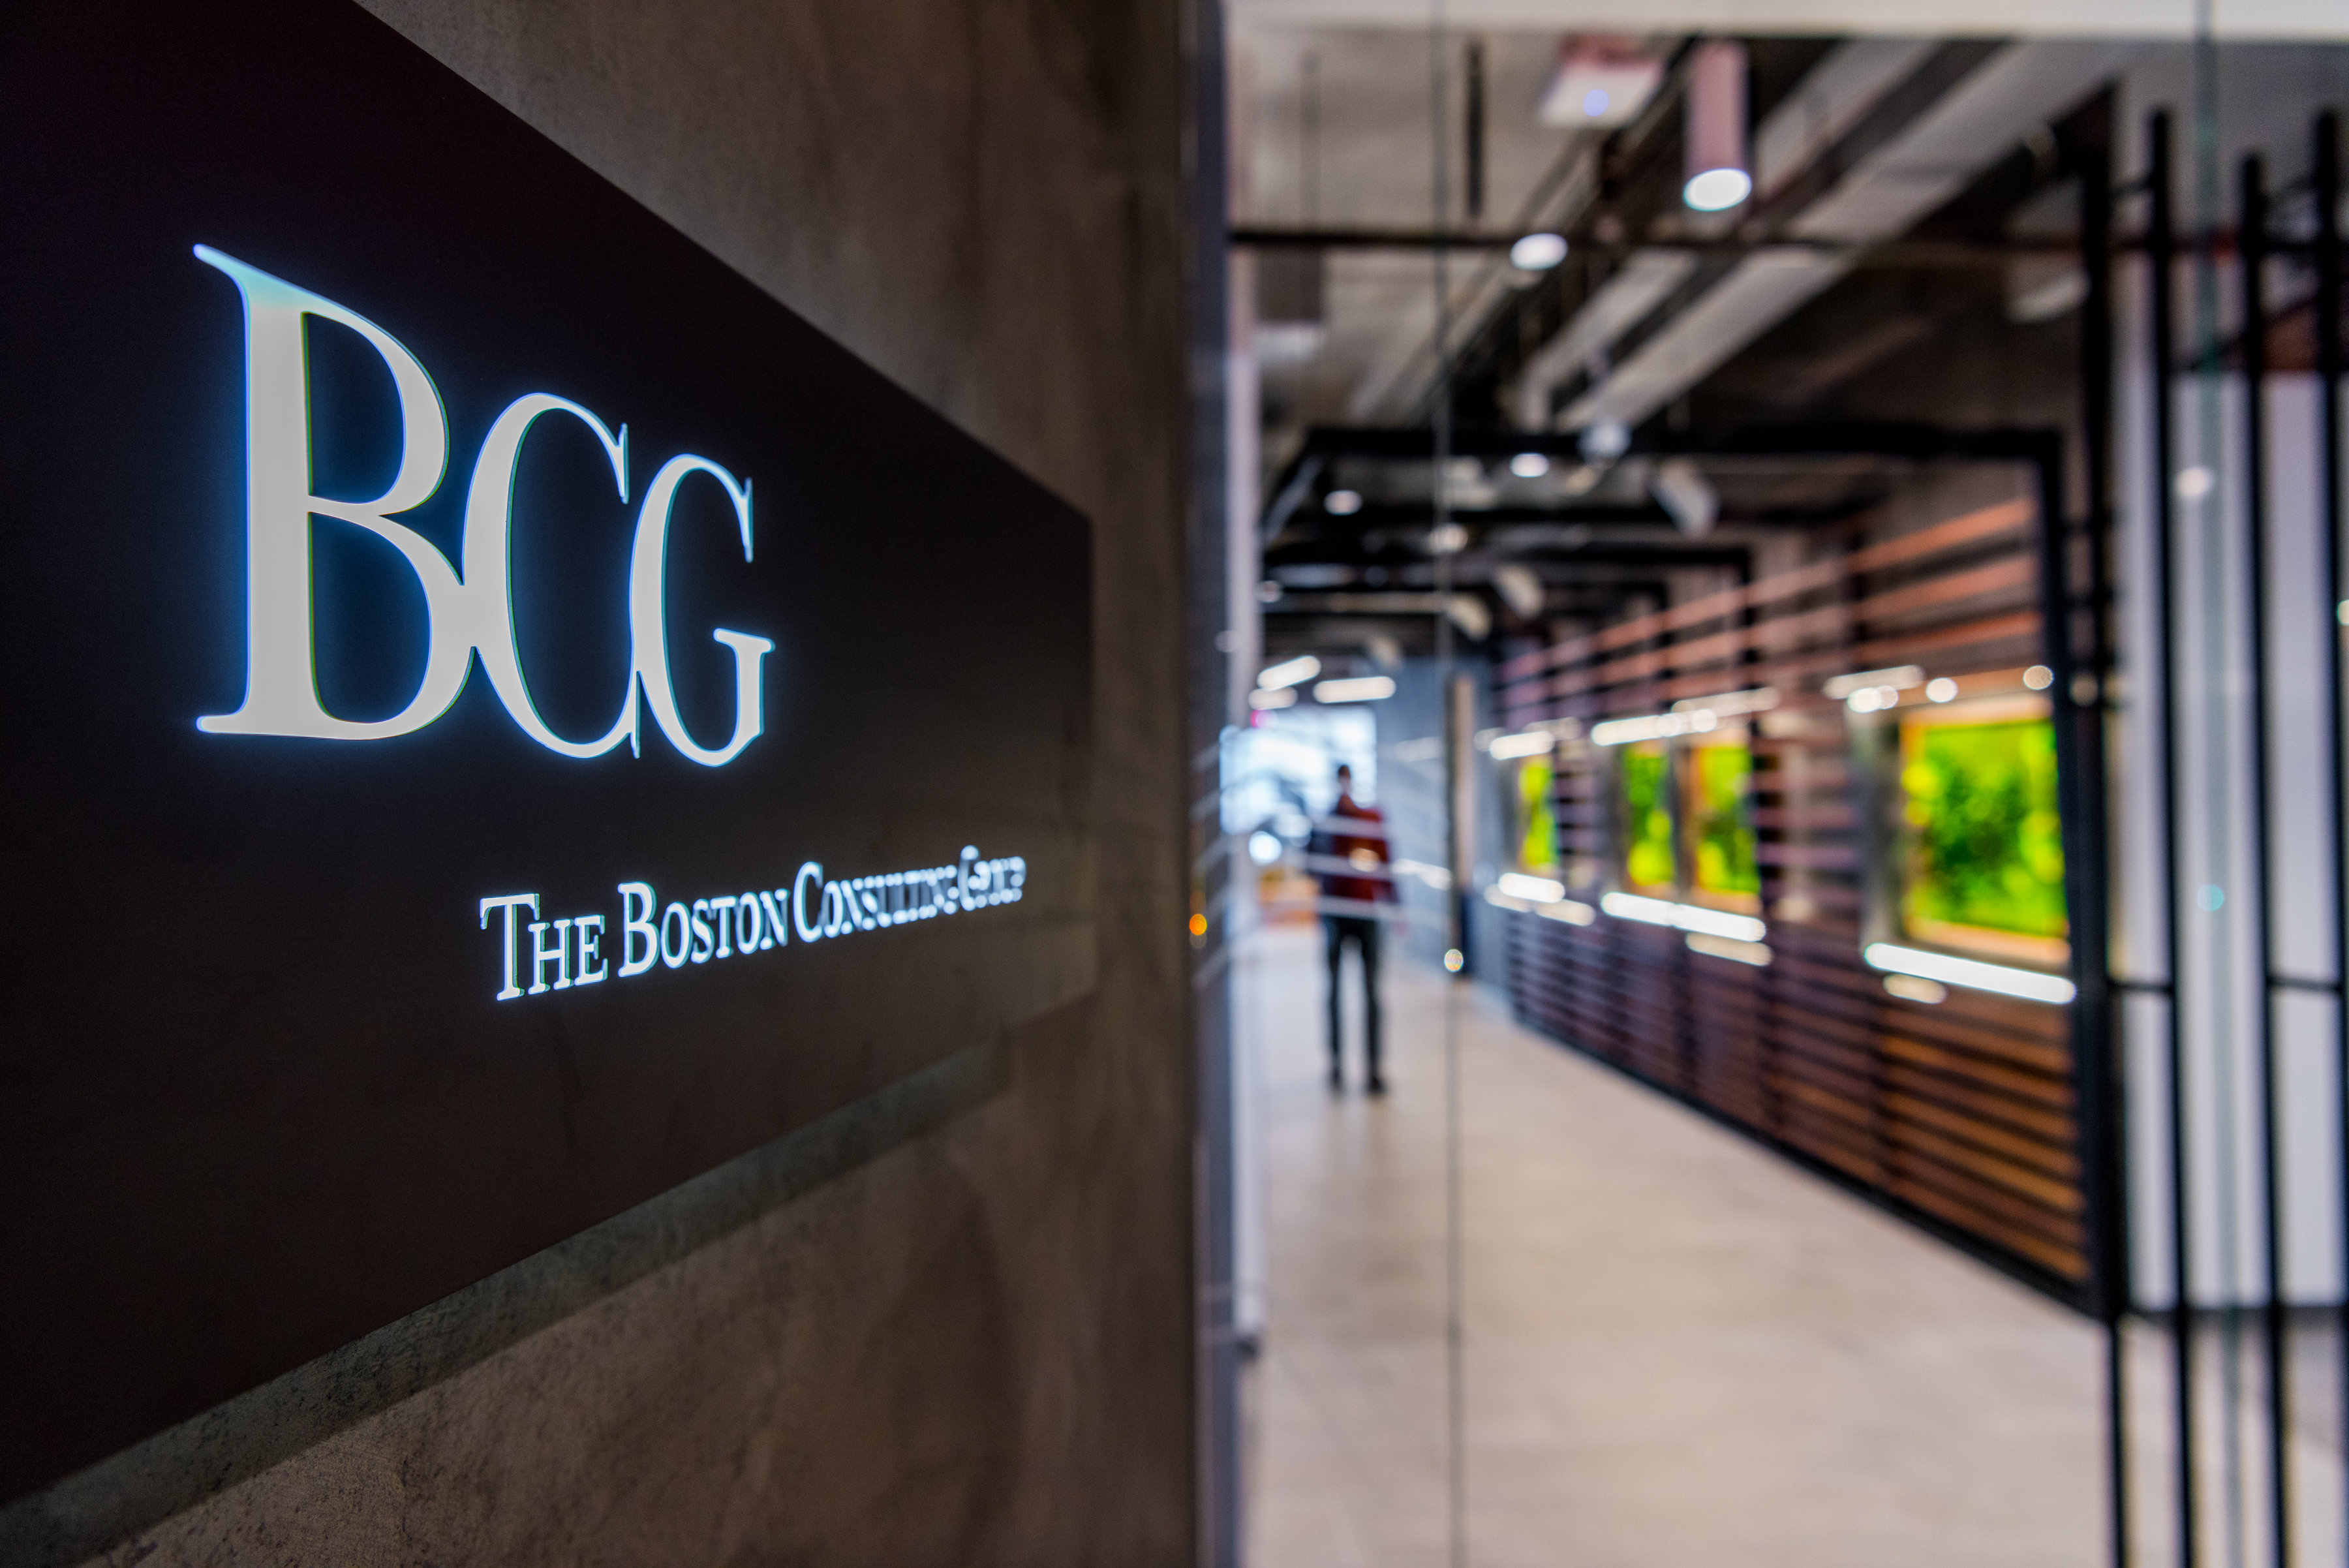 Inside The Boston Consulting Group's state of the art New